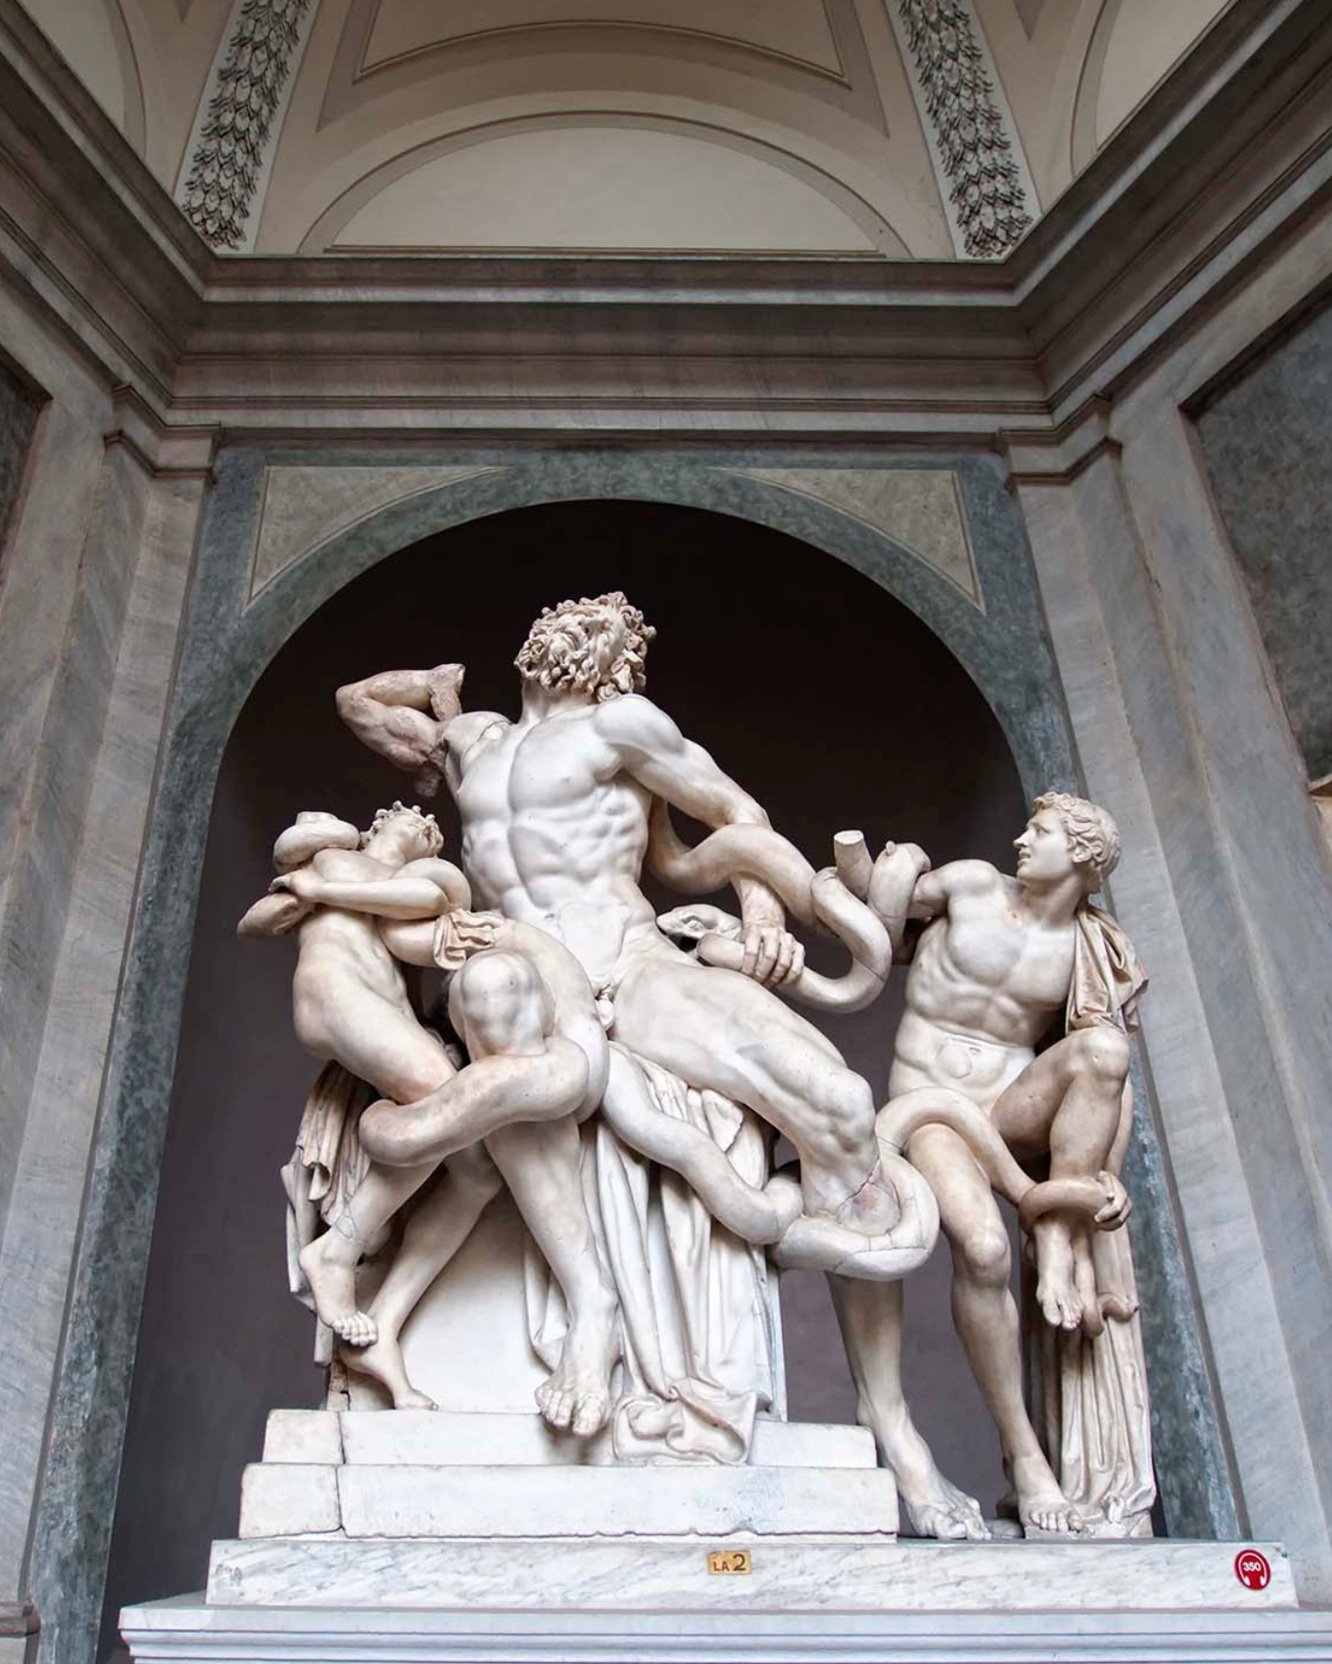 9. Laocoön Group (Vatican Museum, Vatican City) - When Laocoön, a priest in the Trojan War, tried to warn his fellow citizens not to accept the gift of the Trojan horse, the gods sent two sea-serpents to kill Laocoön and his sons. We do not know whether this marble masterpiece is an original Greek statue or a copy made by the Romans (the Vatican places it between 30-40 BCE), but either way it is one of the best-preserved and most dramatic ancient statues in existence.